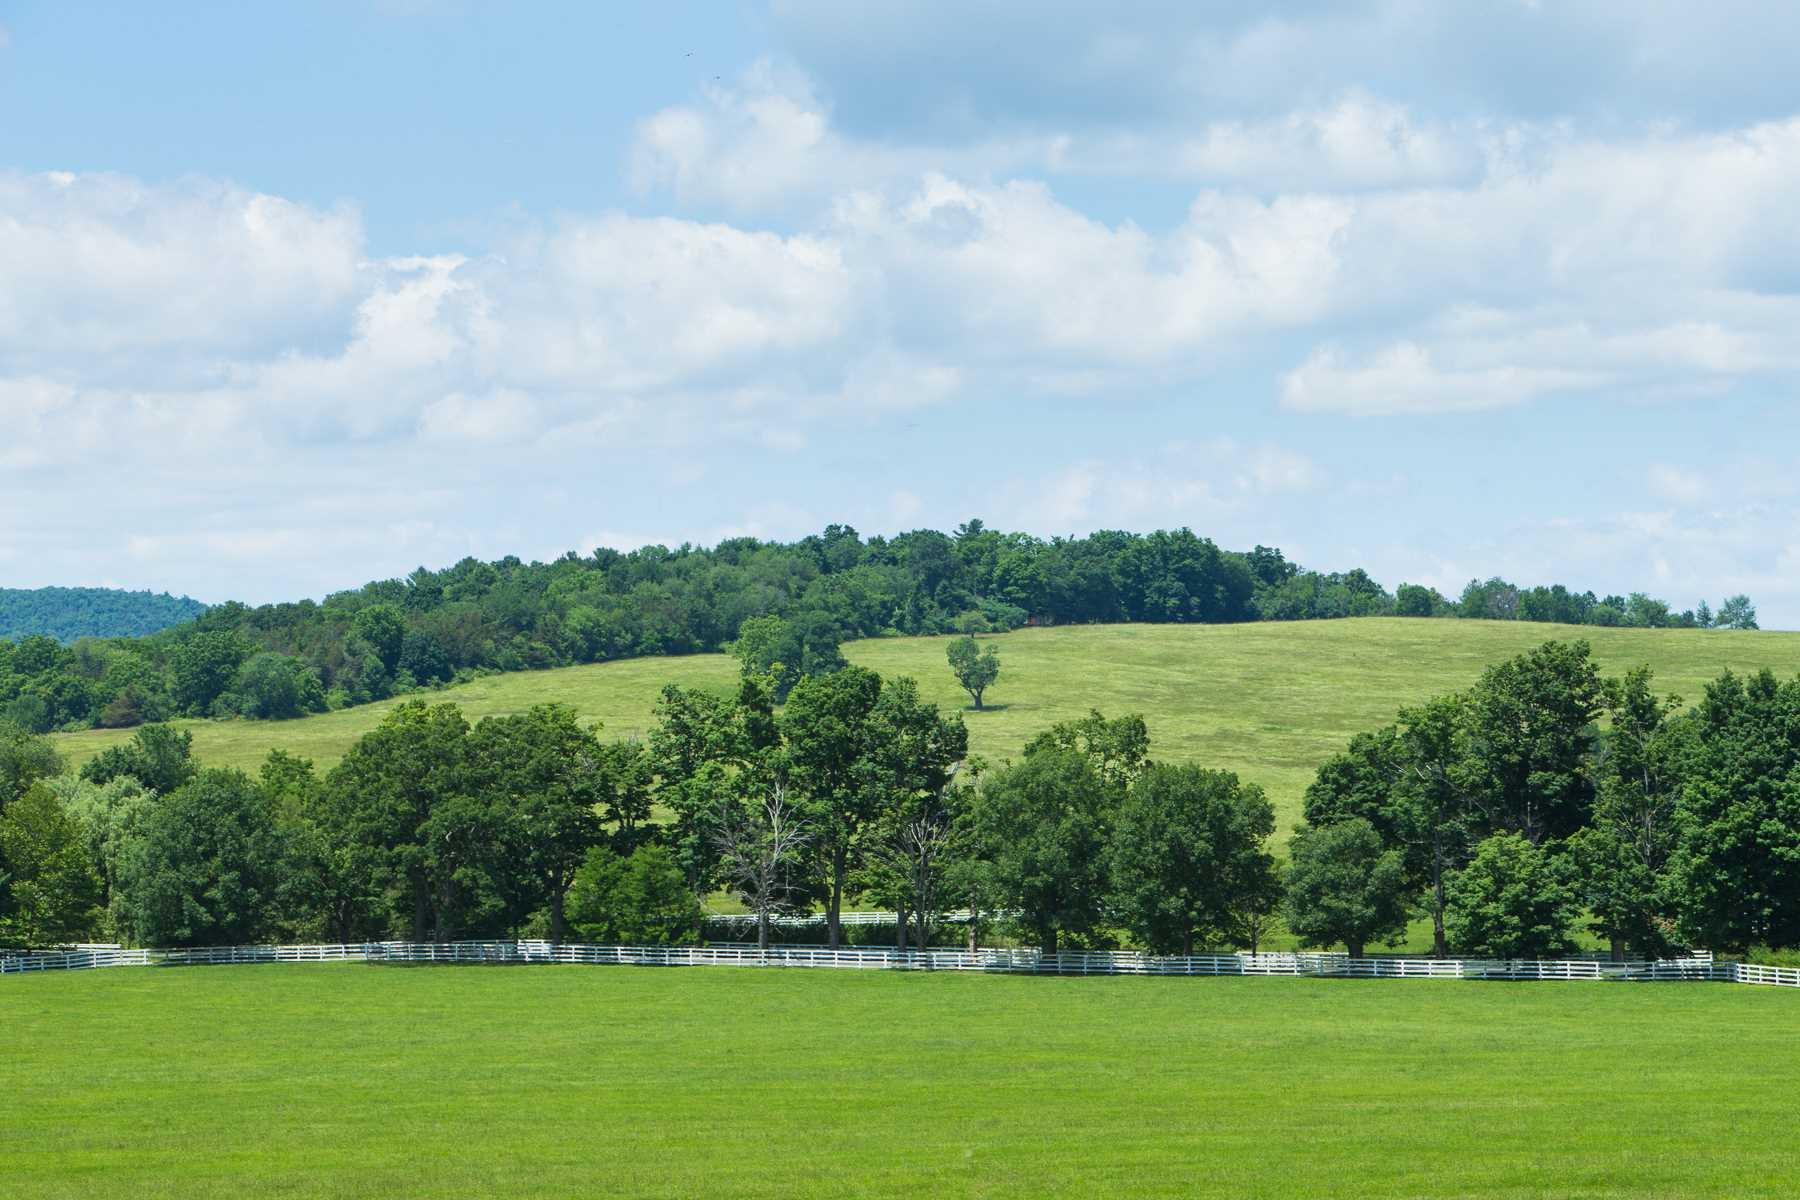 Land for Sale at 166 STREVER FARM ROAD 166 STREVER FARM ROAD Pine Plains, New York 12567 United States